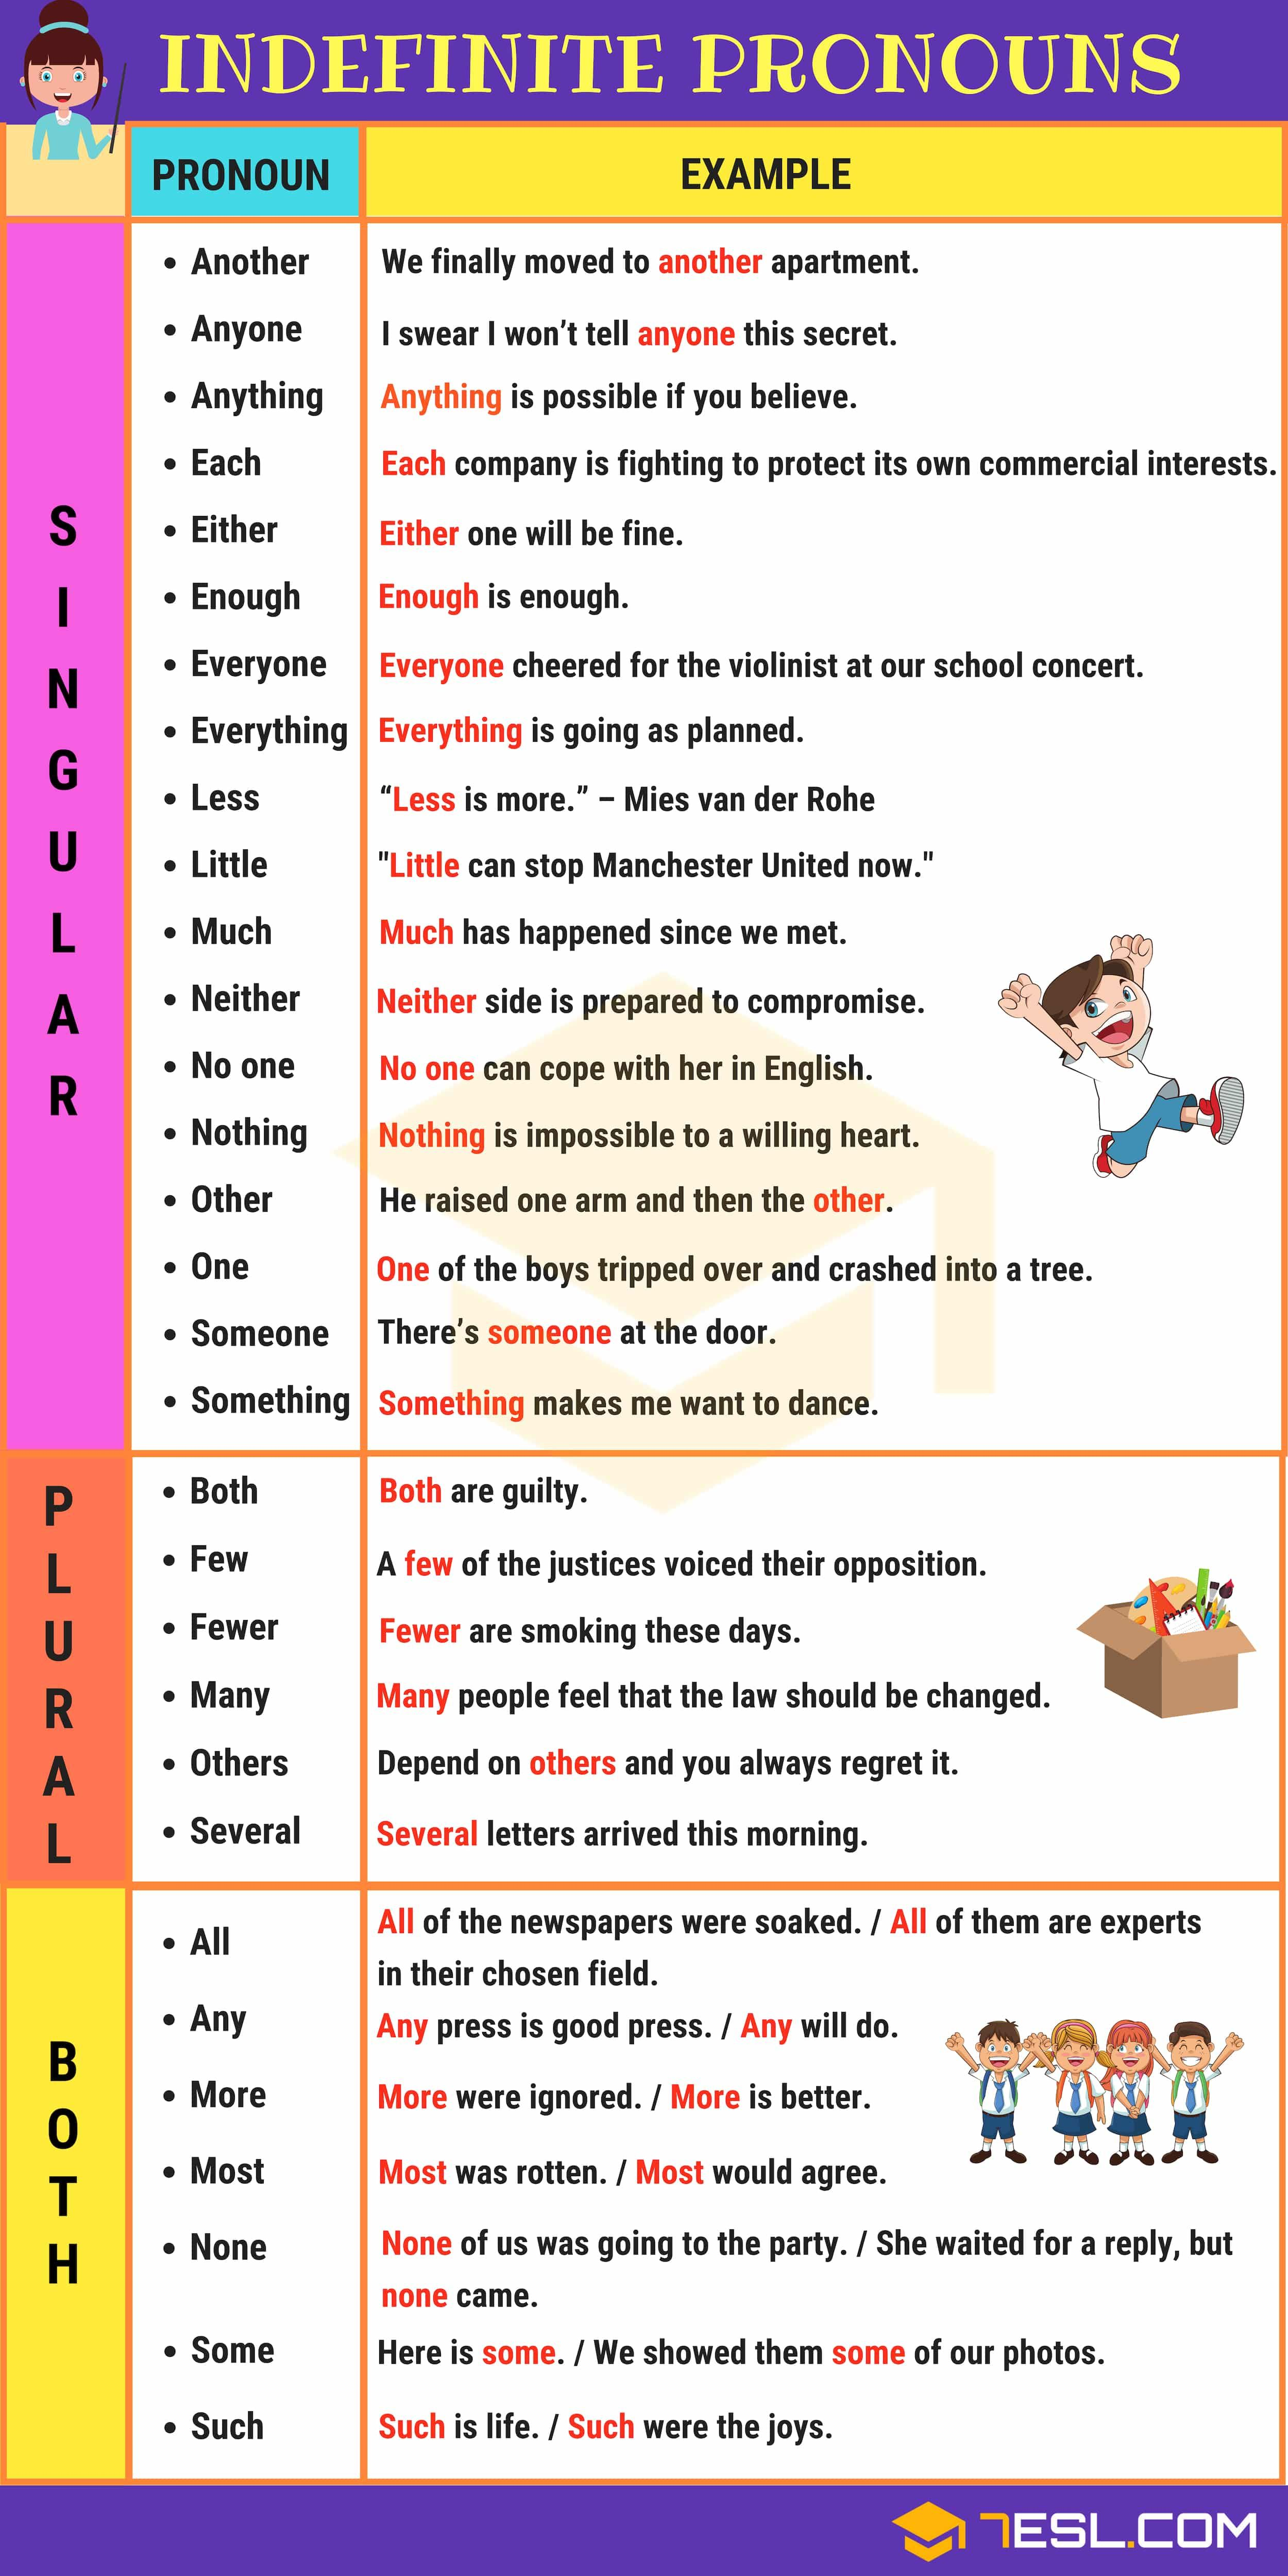 Indefinite Pronouns Useful Singular Plural List